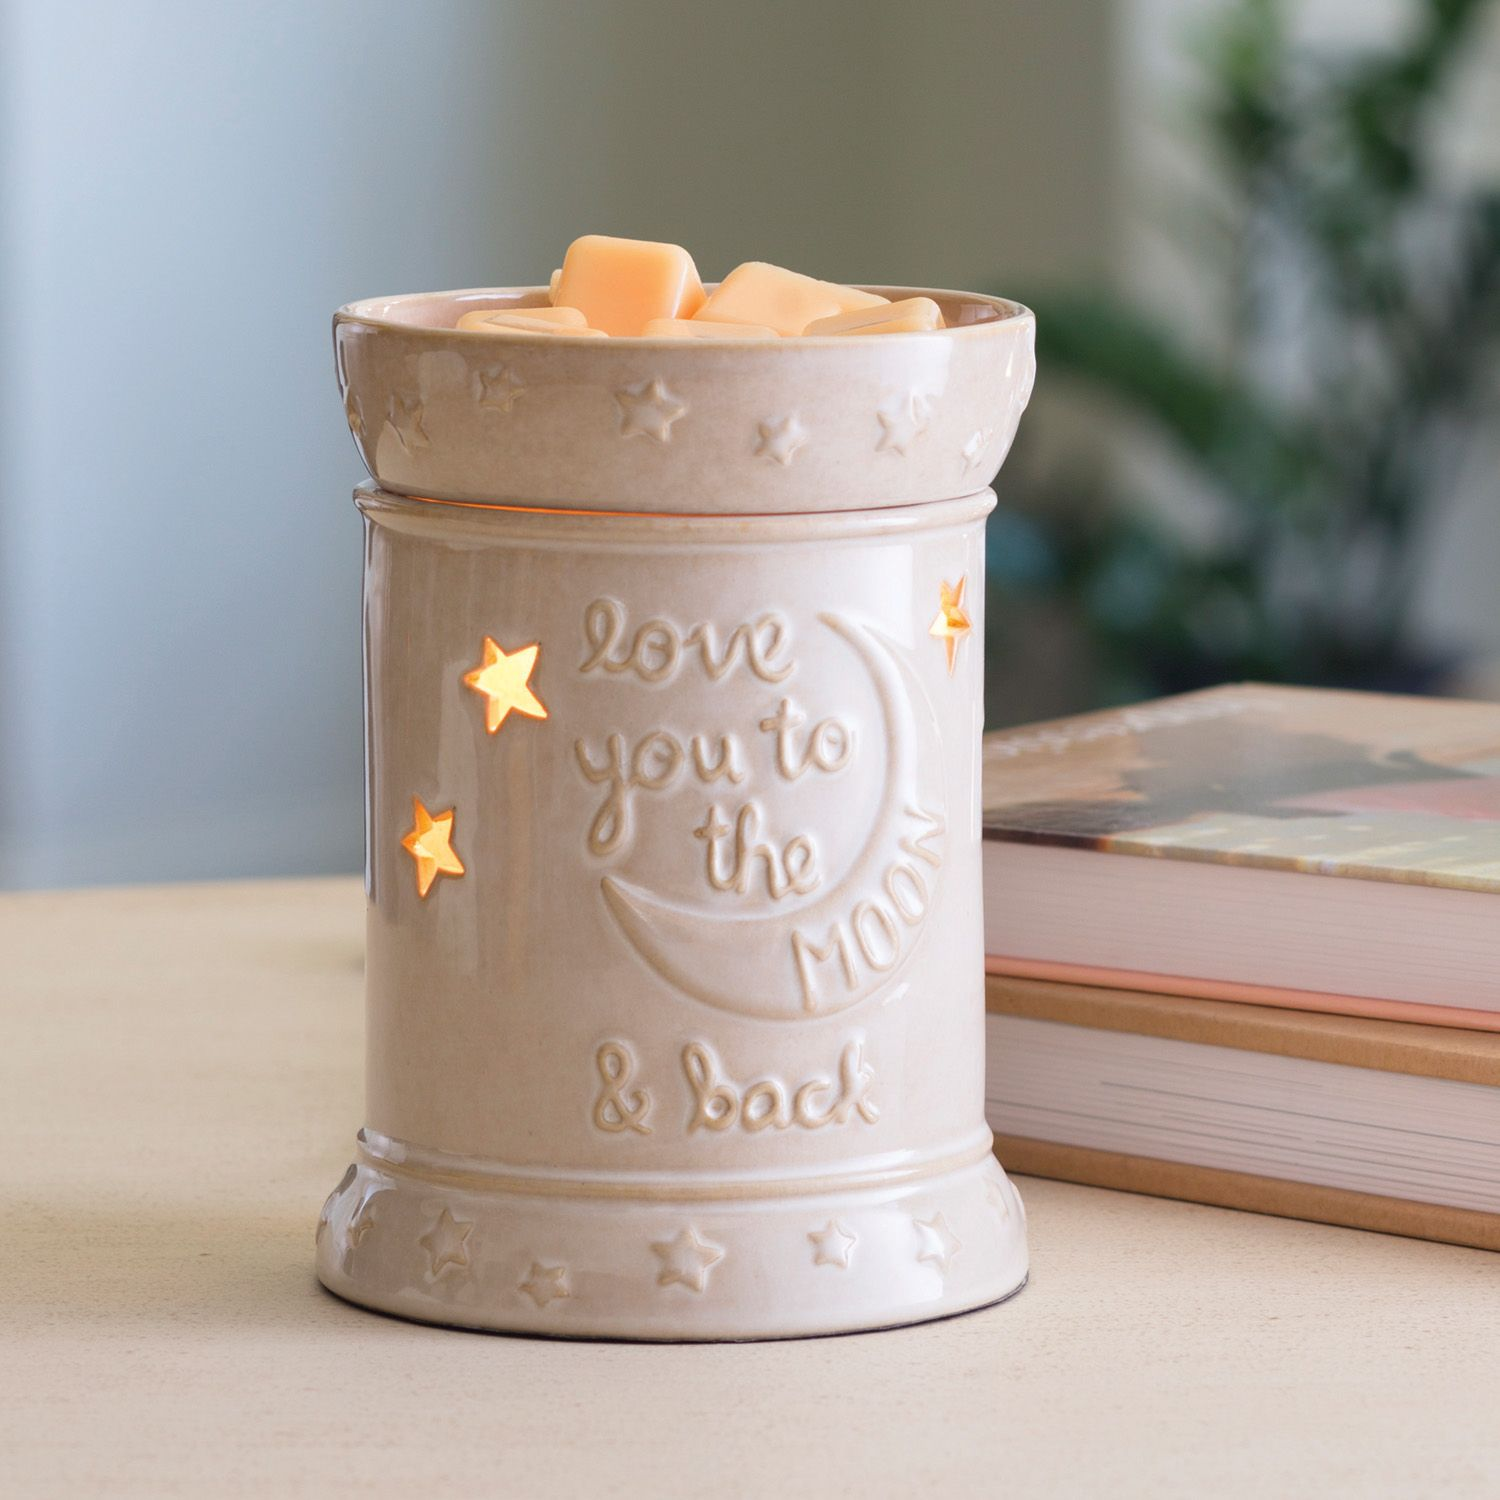 Love You To The Moon Fragrance Warmer The Cheeky Unicorn Boutique Scented Wax Warmer Candle Warmer Wax Warmer